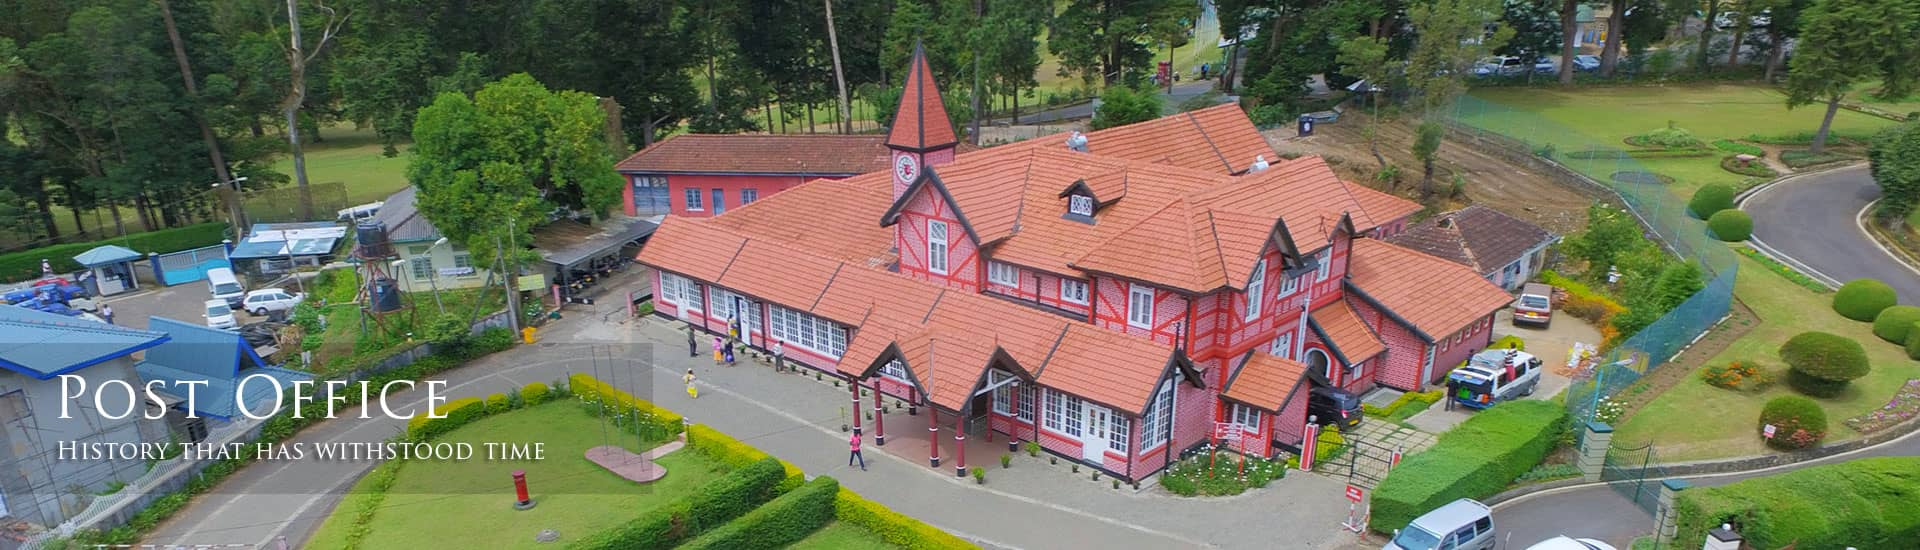 nuwara-eliya-post-office